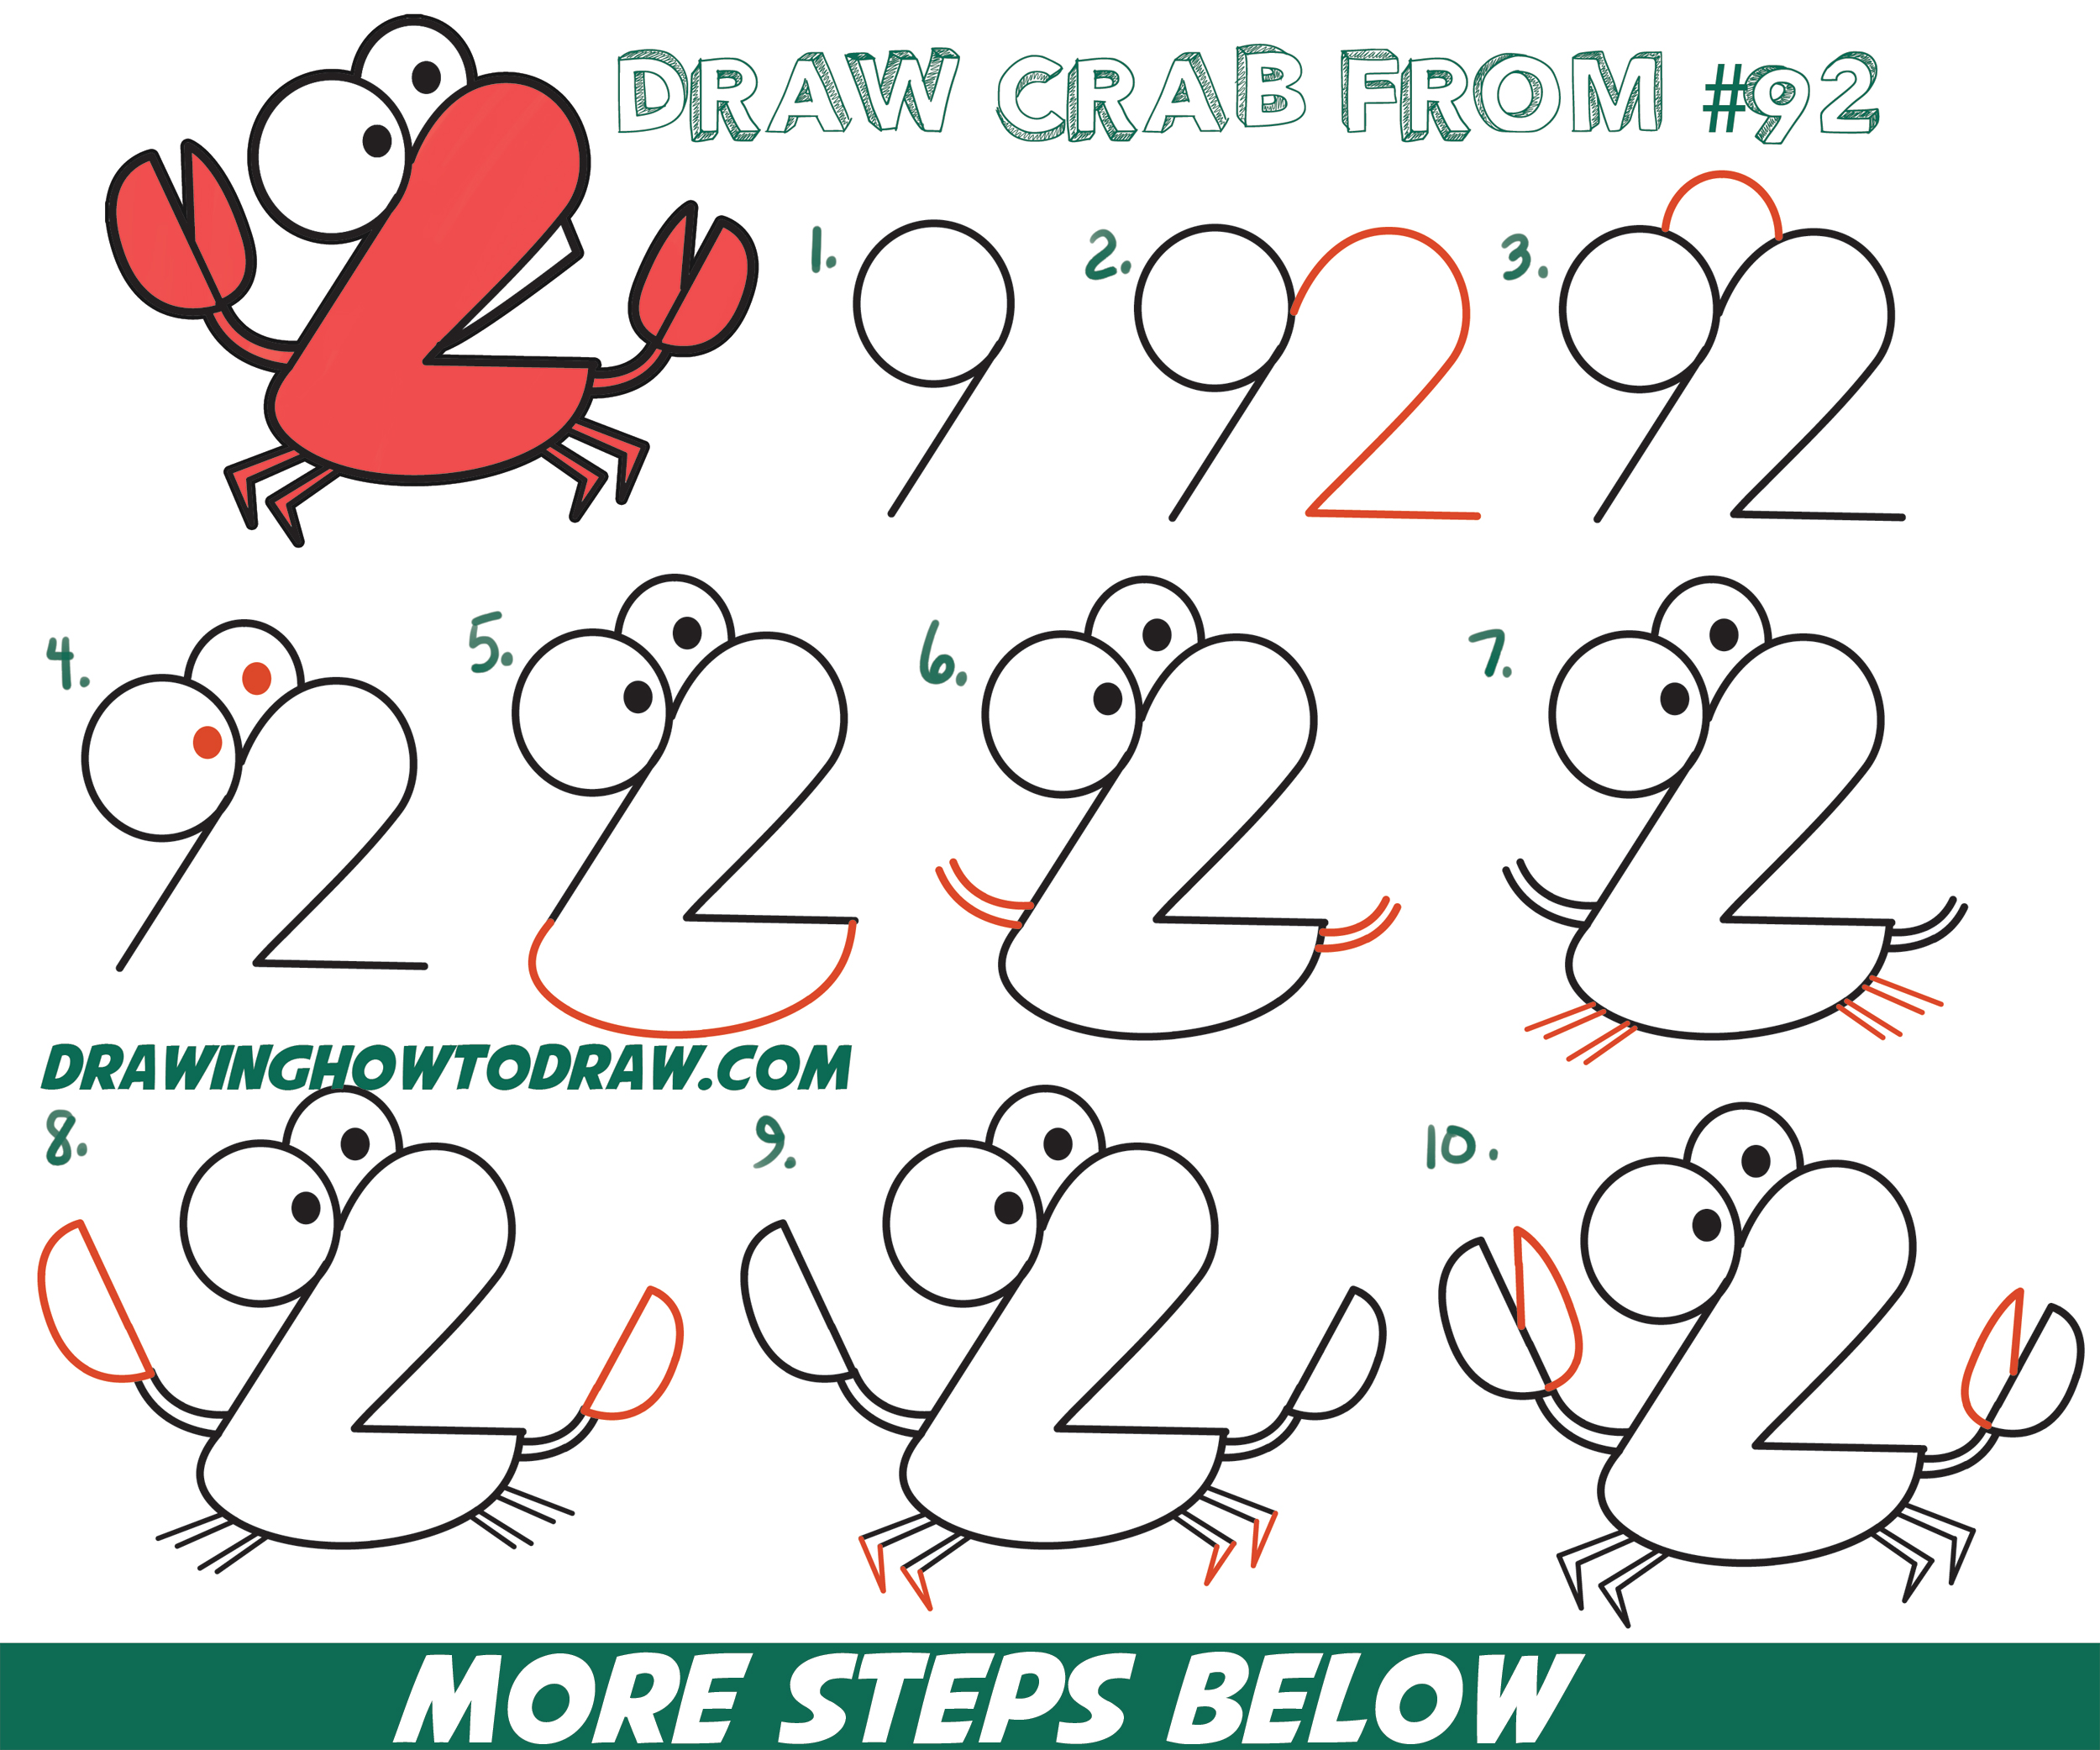 How To Draw Cartoon Crab From Numbers 92 Easy Step By Step Drawing